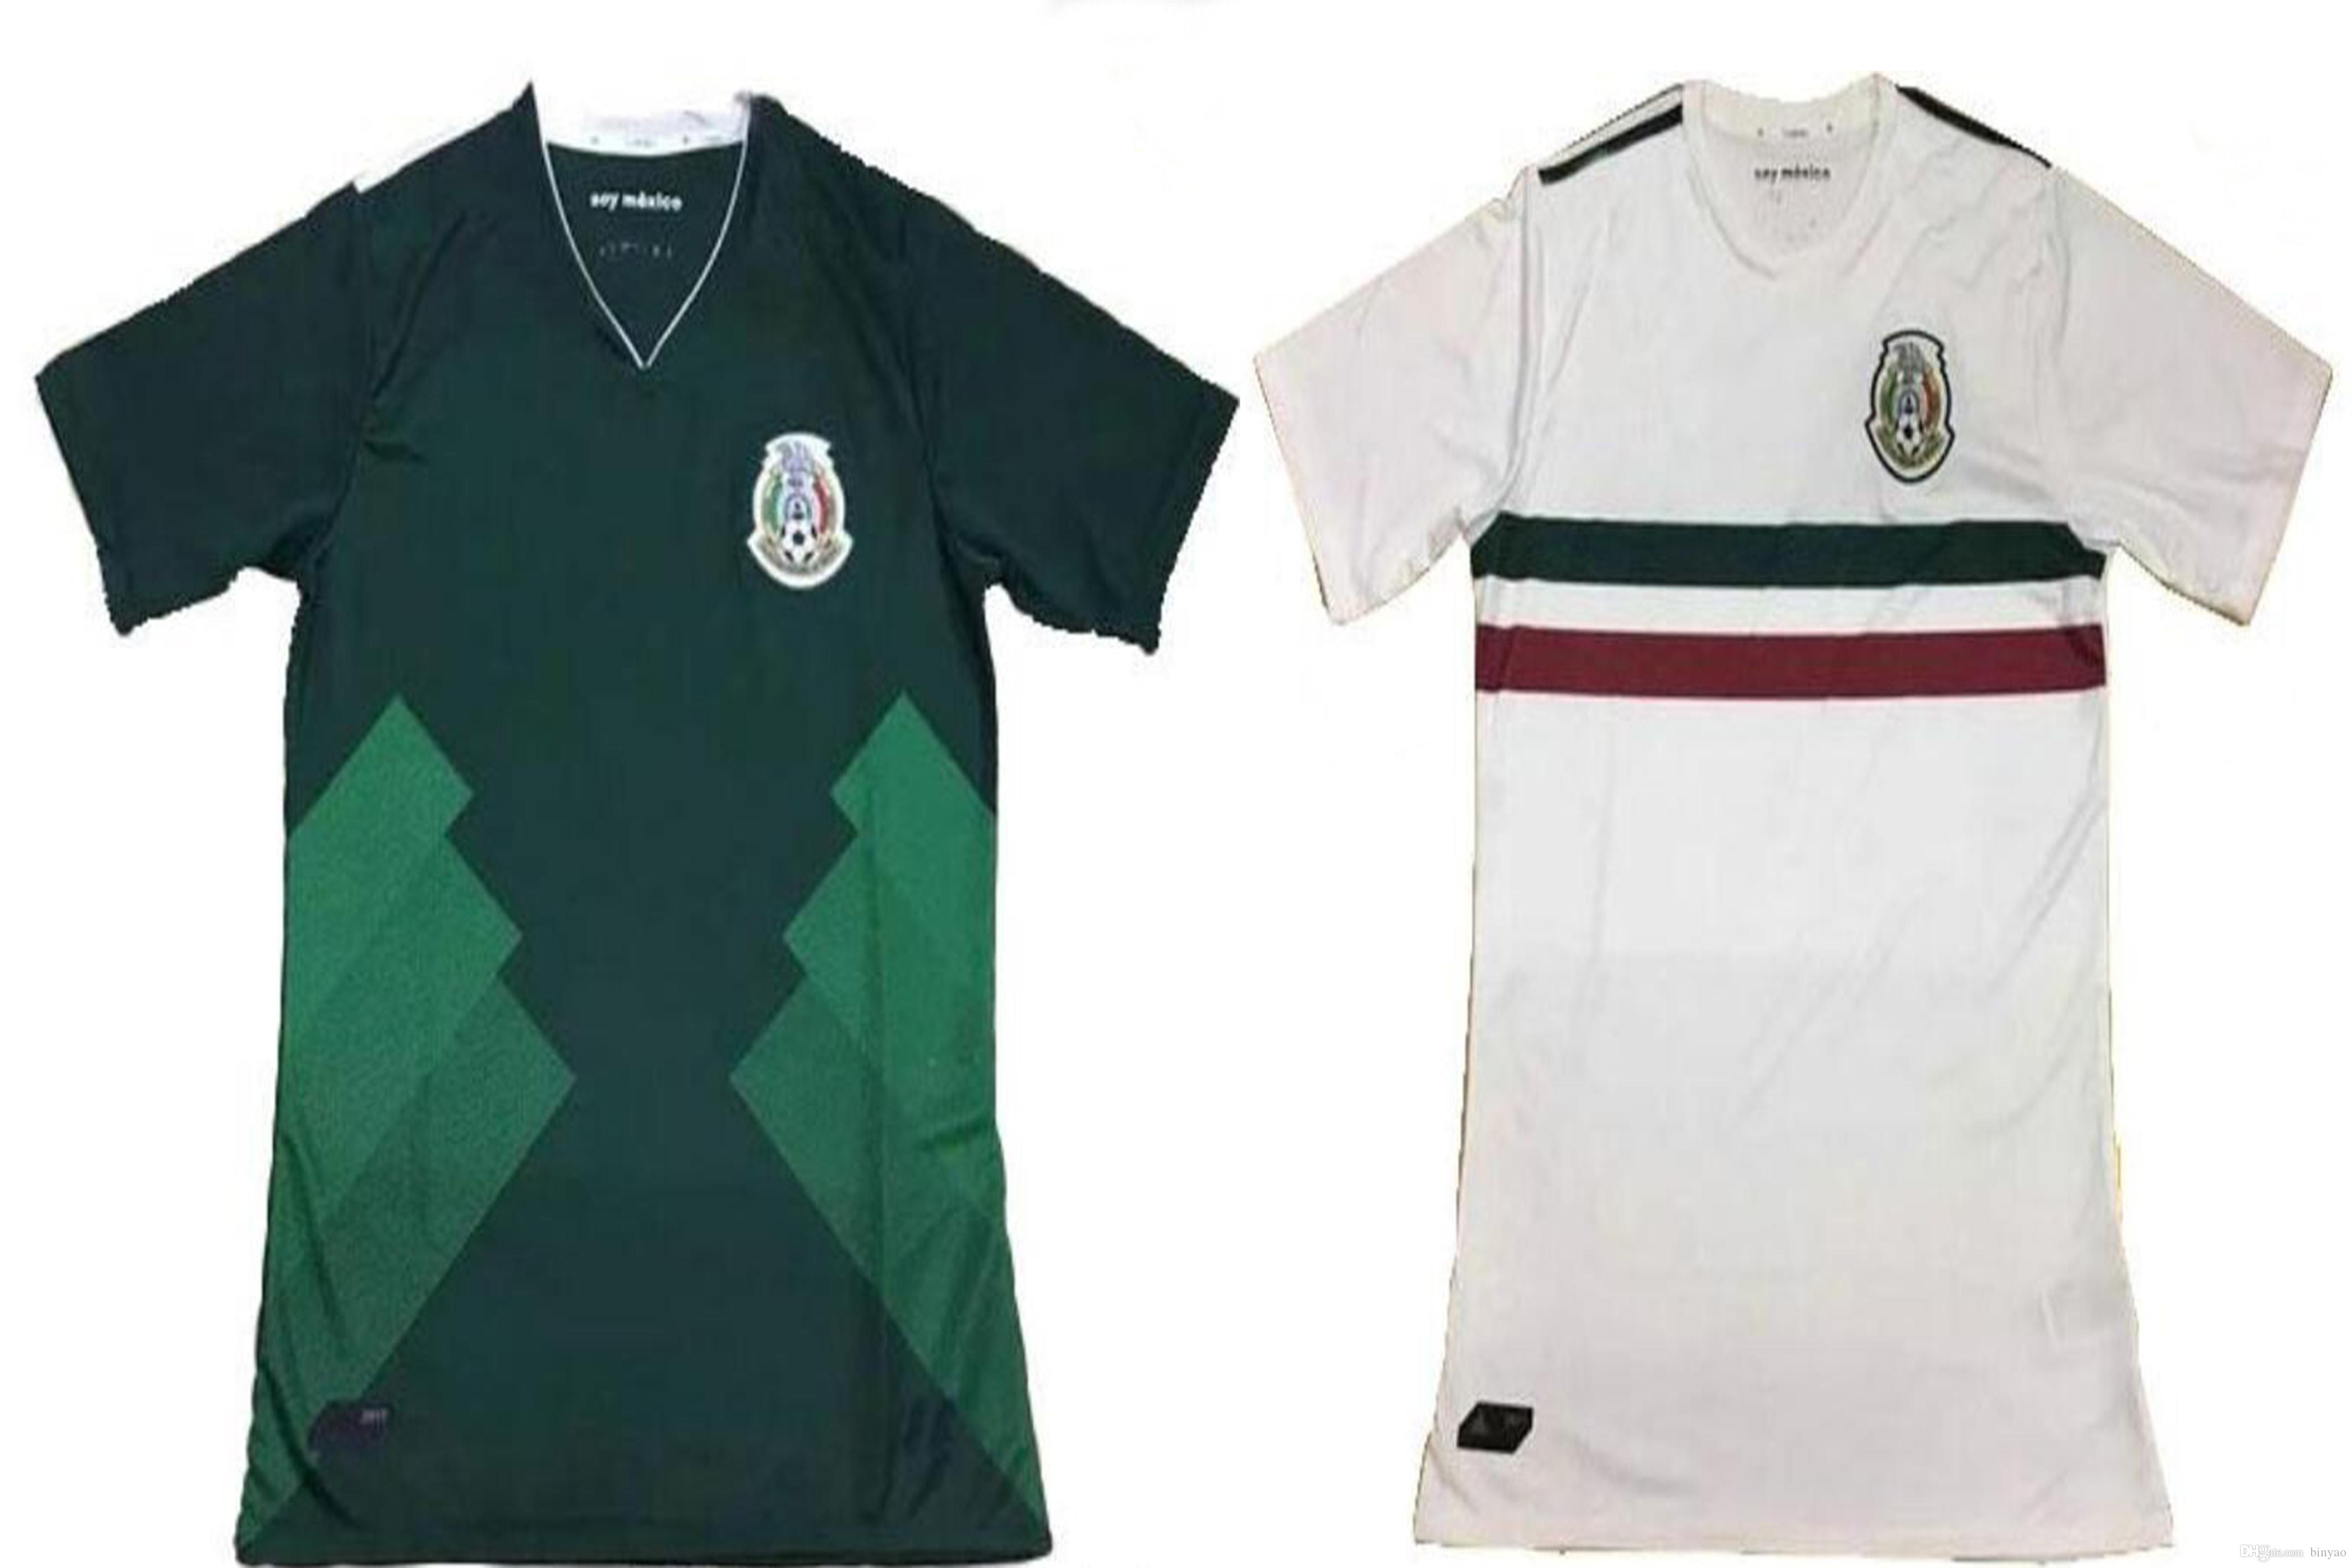 298226c0319 2017 2018 Mexico Soccer Jersey Home Away 17 18 Green white Best football  shirt CHICHARITO G.DOS SANTOS CARLOS V Camisetas de futbol